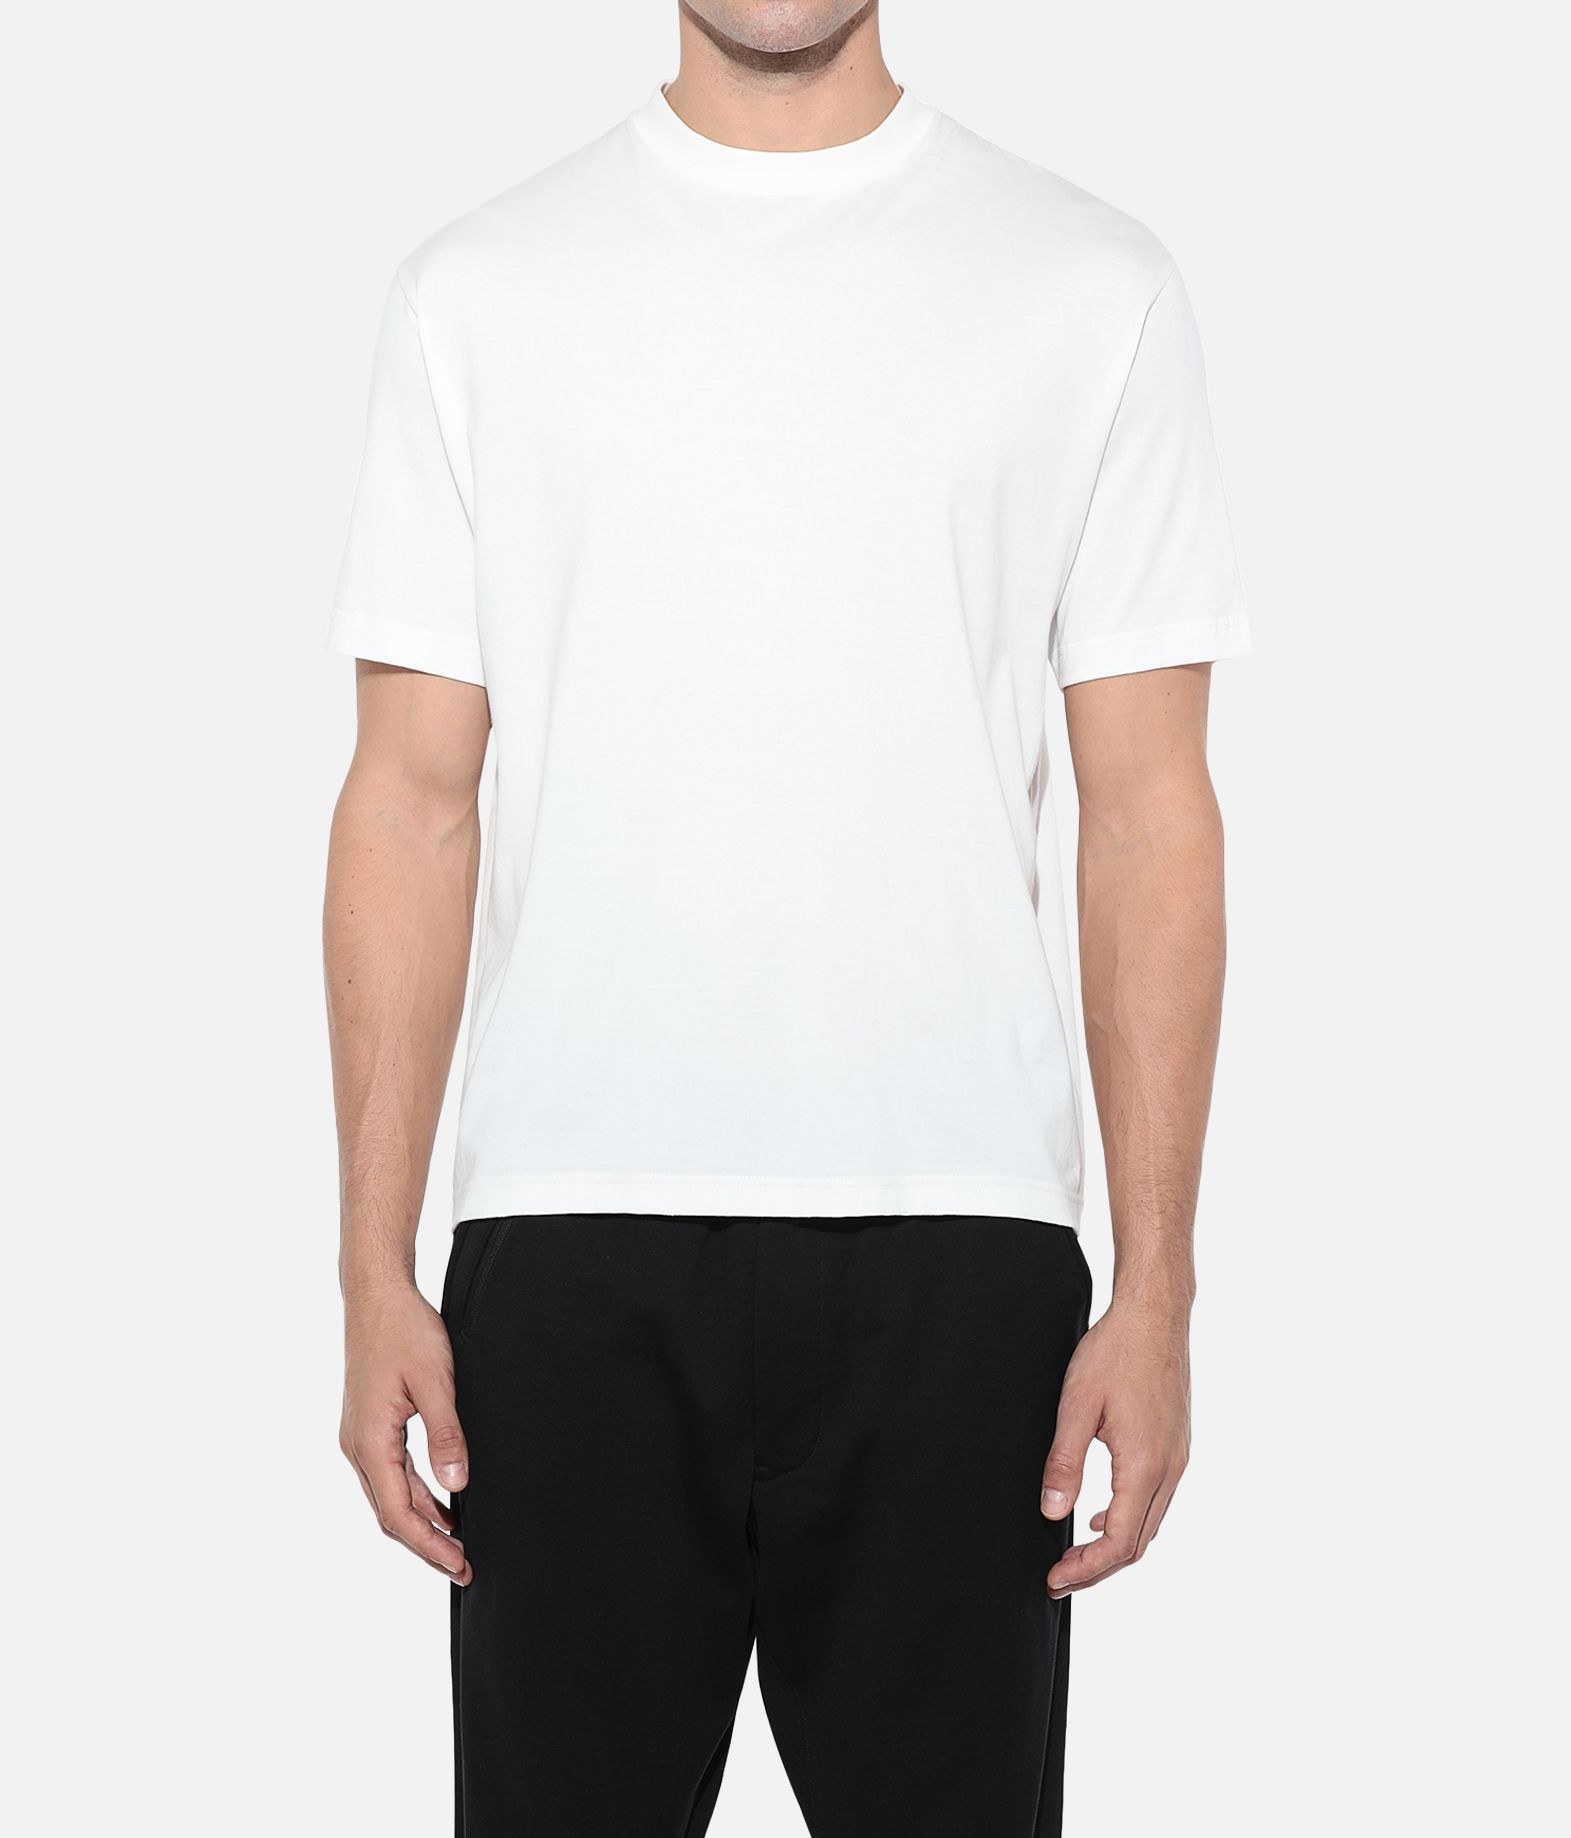 Y-3 Y-3 Signature Graphic Tee Short sleeve t-shirt Man r